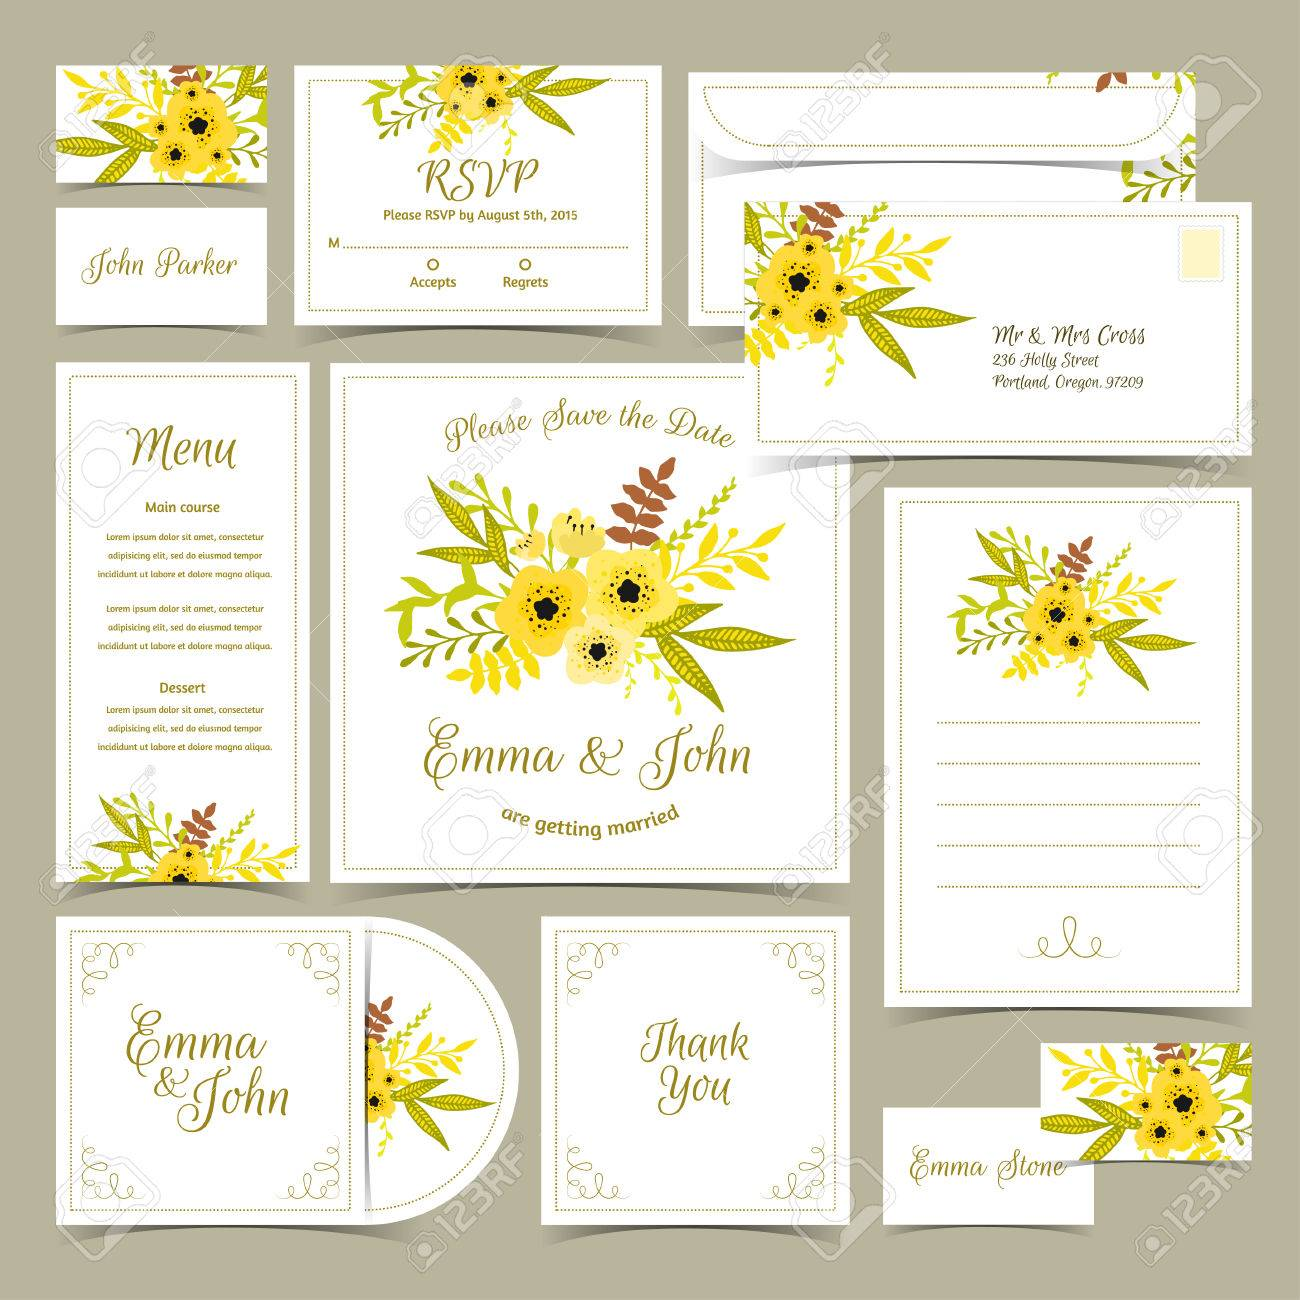 Collection of wedding invitations card template floral rsvp card collection of wedding invitations card template floral rsvp card invitation menu banco stopboris Images